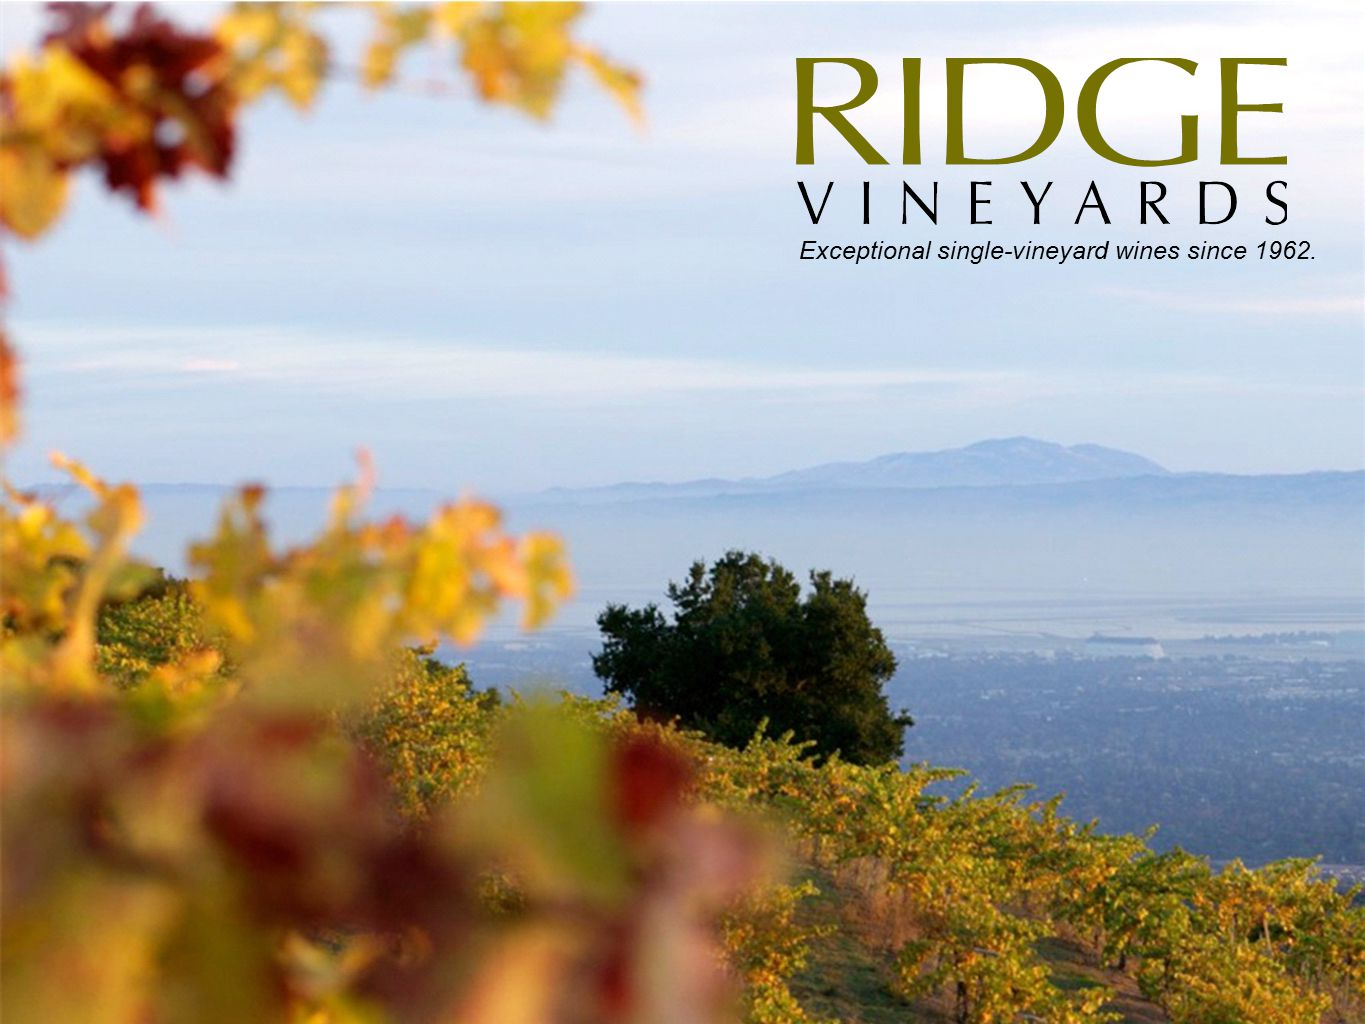 Exceptional single-vineyard wines since 1962.